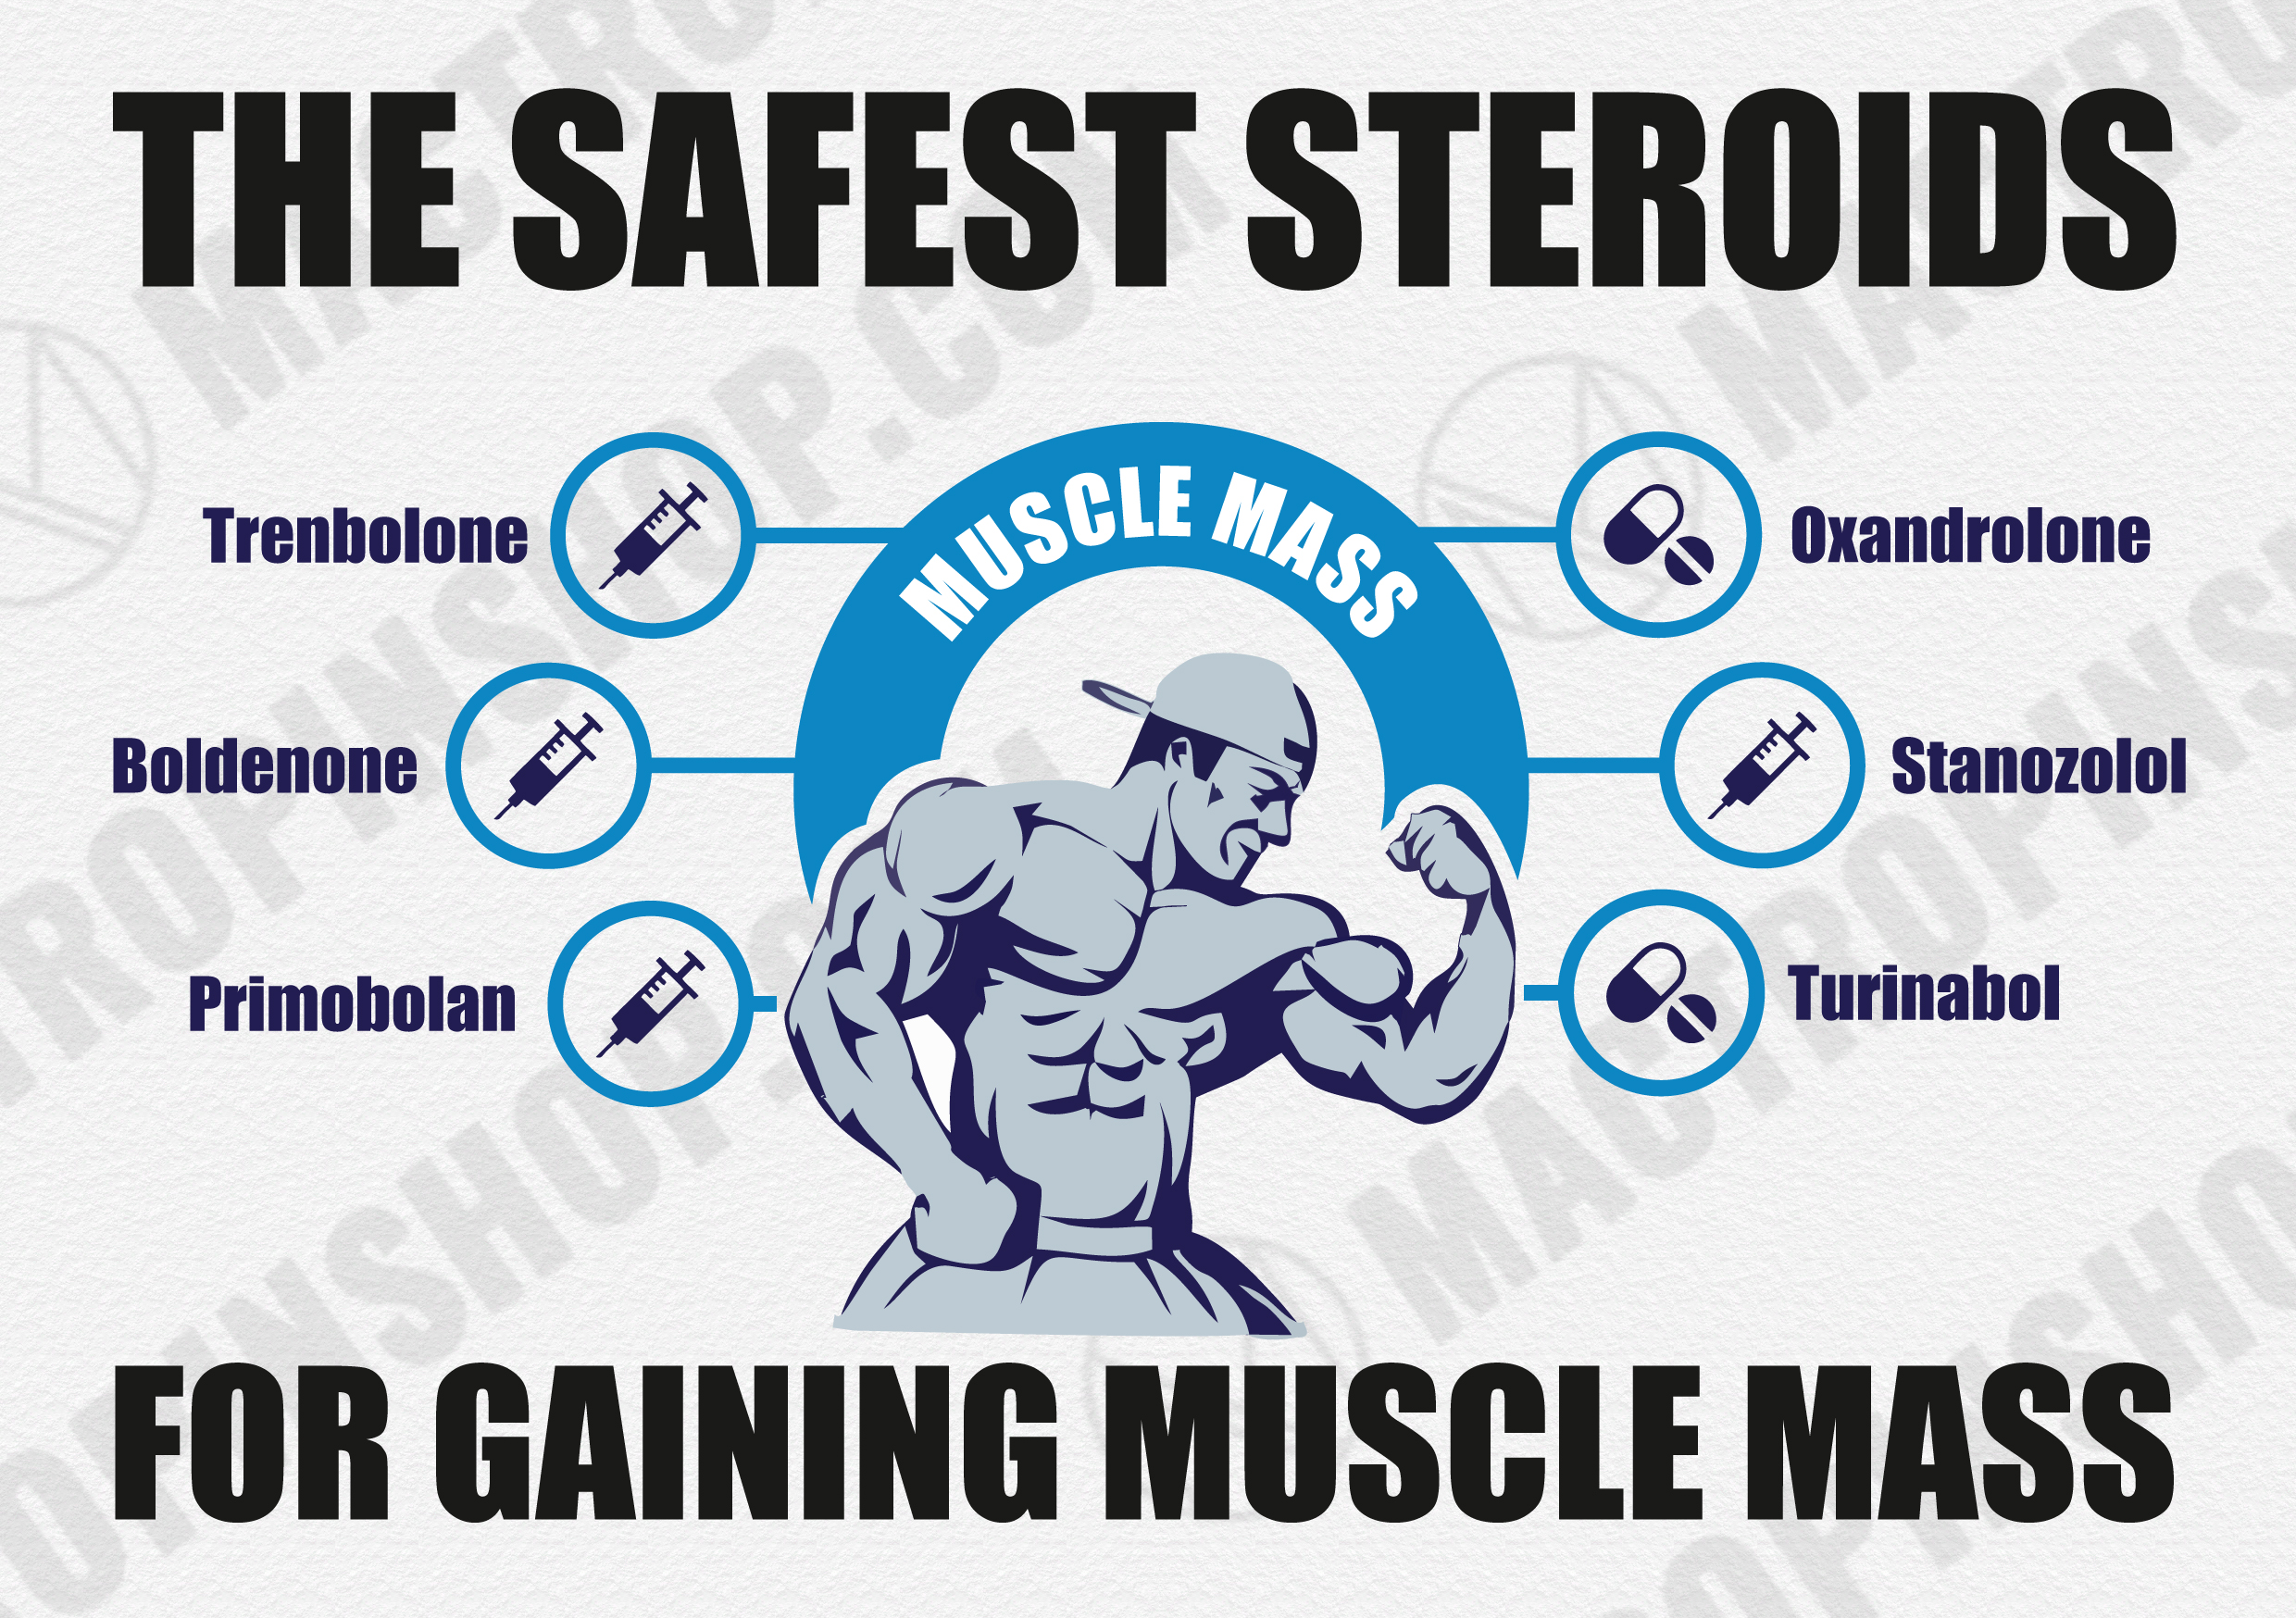 6 Best Safe Steroids for Muscle Gain